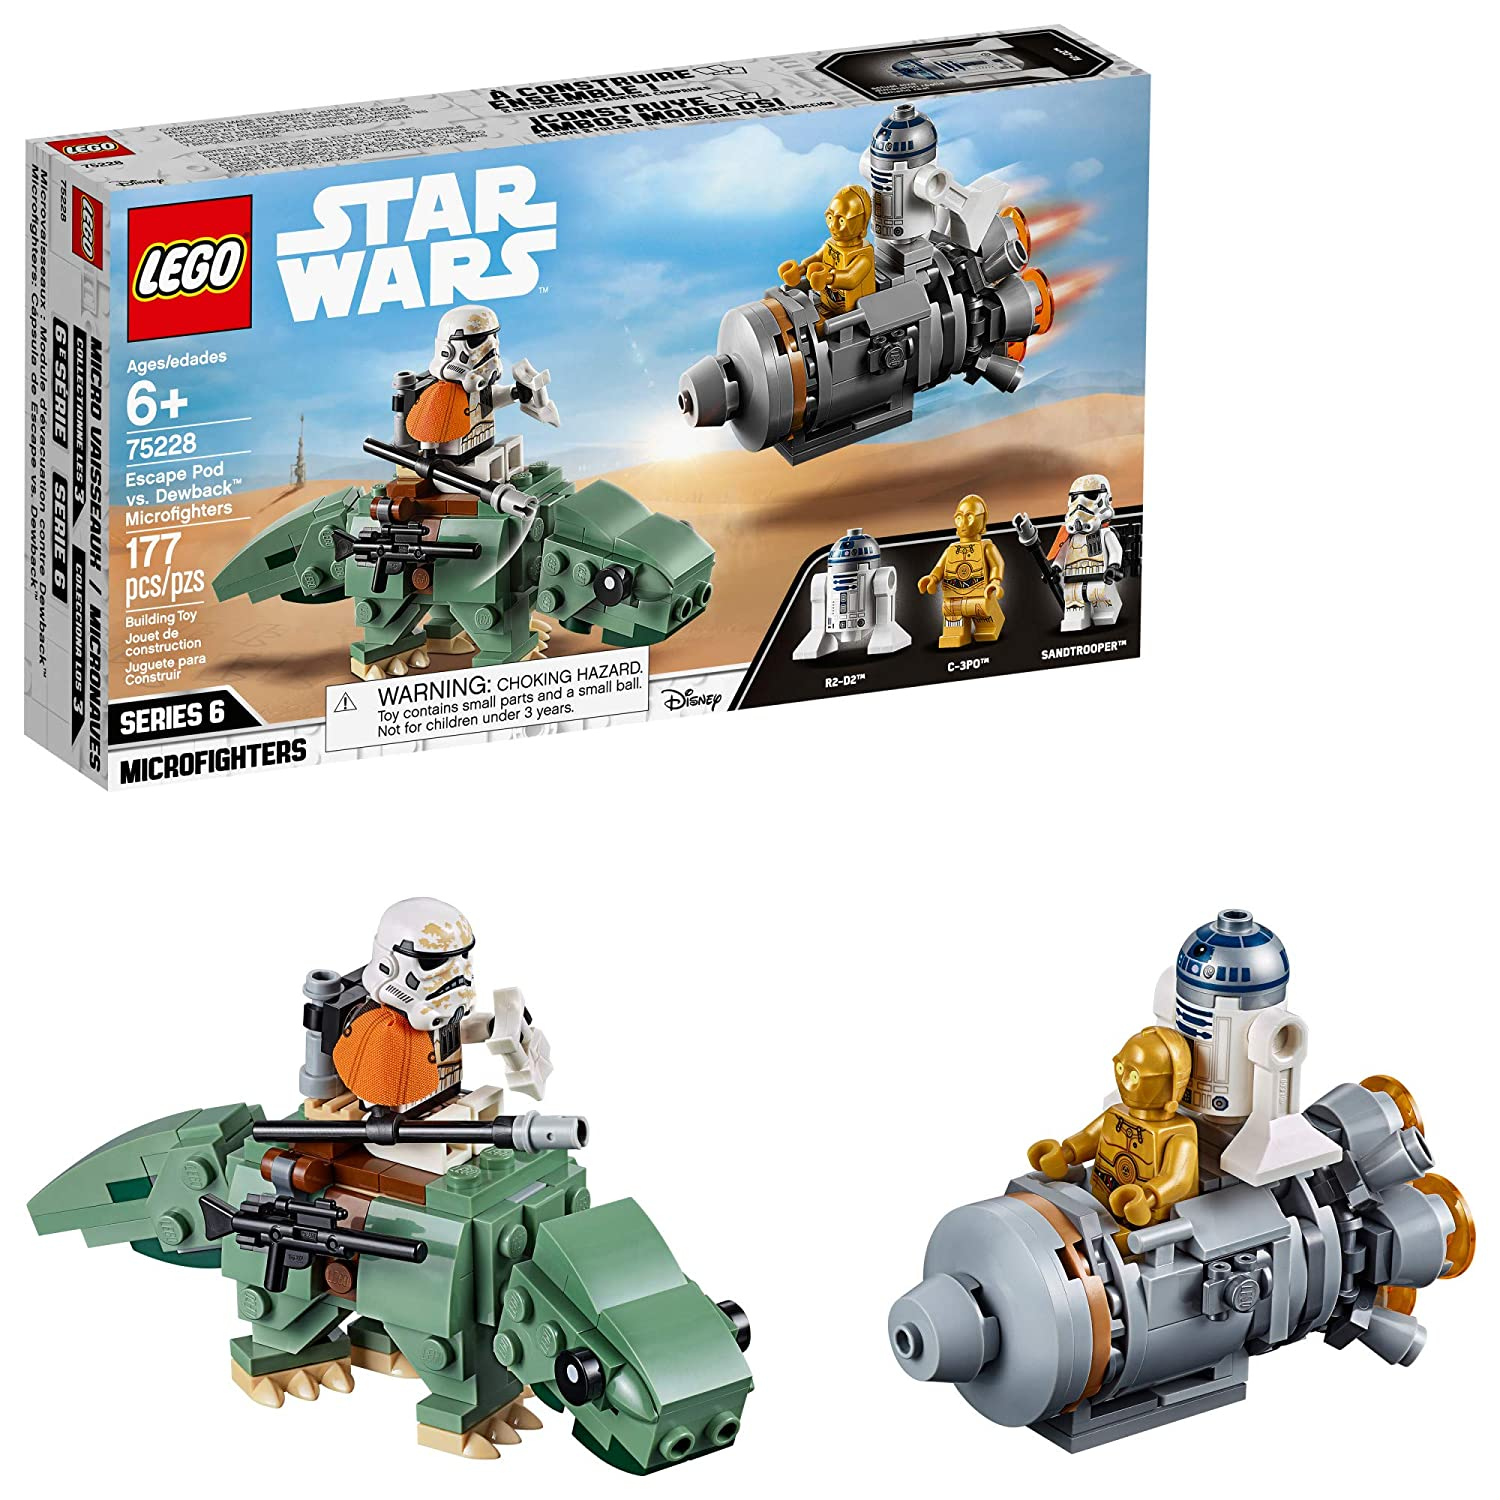 Lego Star Wars A New Hope Escape Pod Vs Dewback Microfighters 75228 Building Kit 2019 177 Pieces